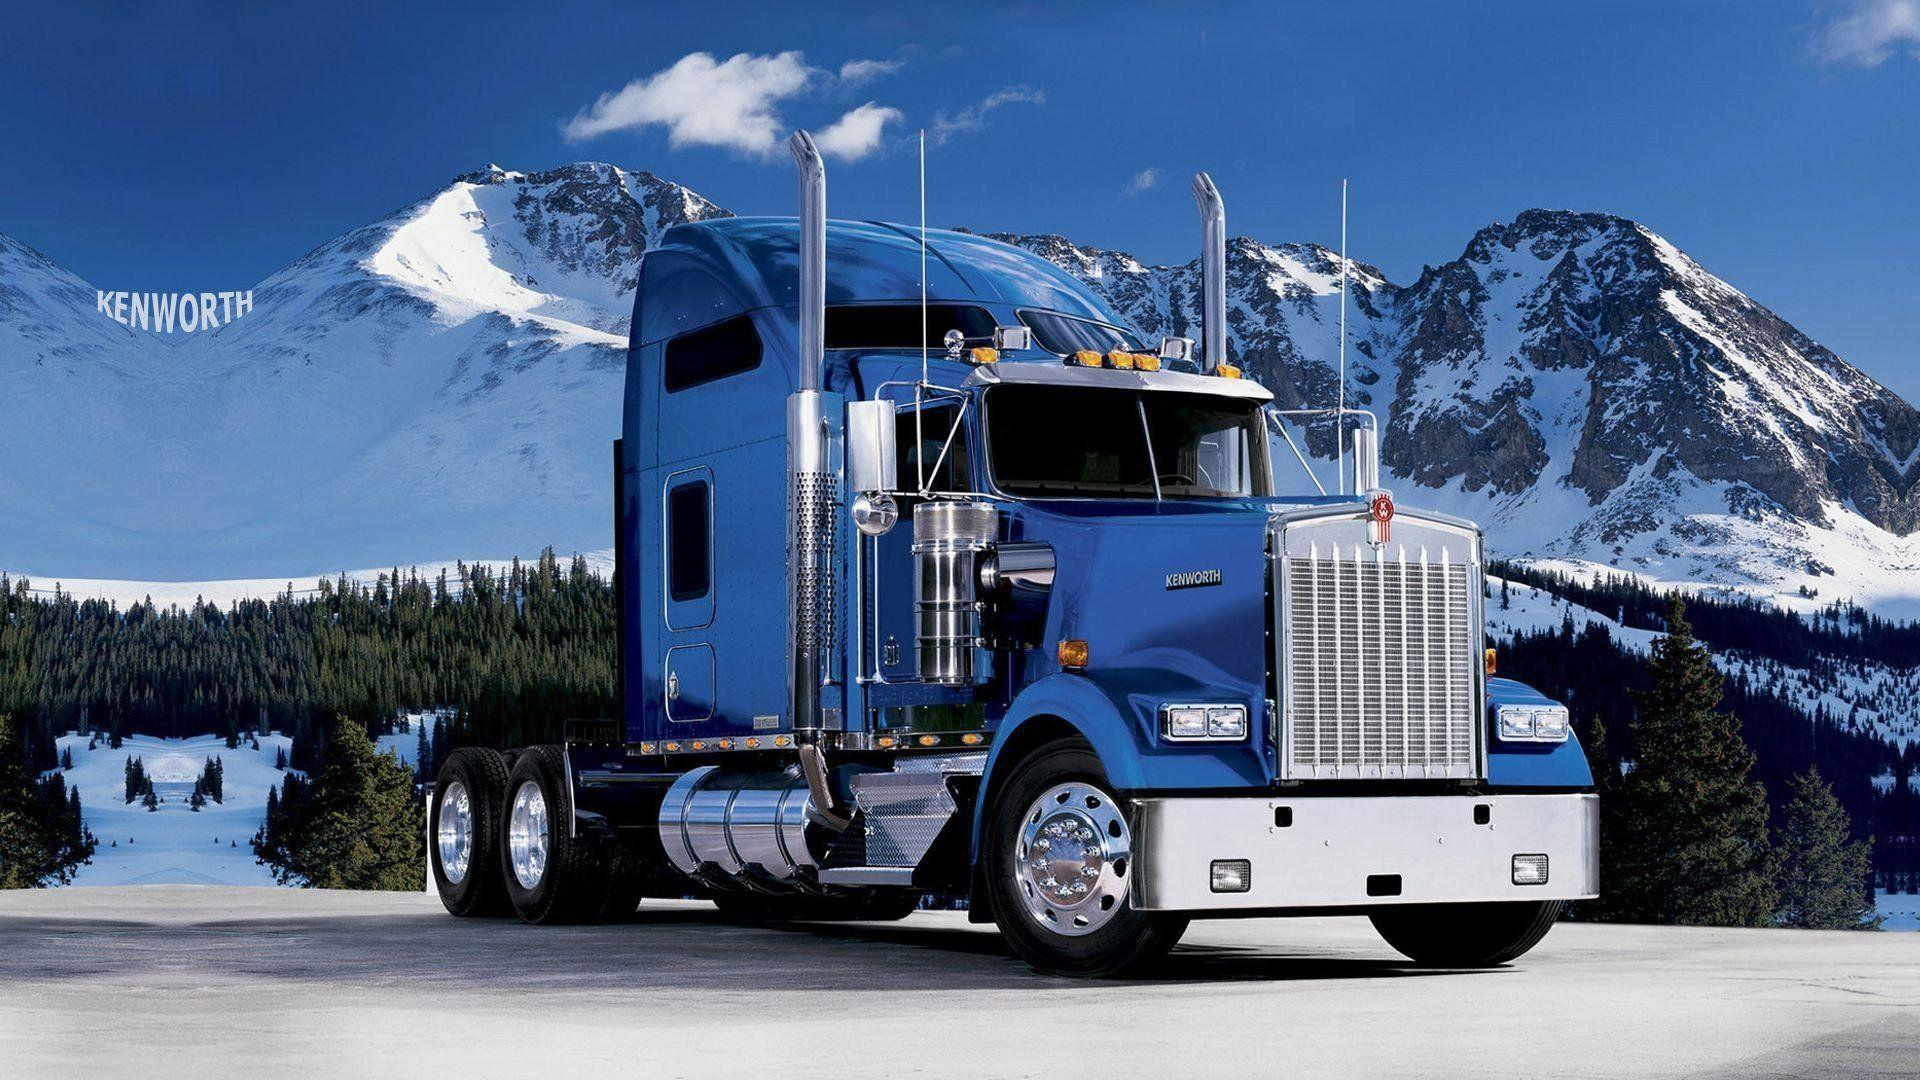 Trucks kenworth Peterbilt wallpaper | 1920x1080 | 292206 | WallpaperUP